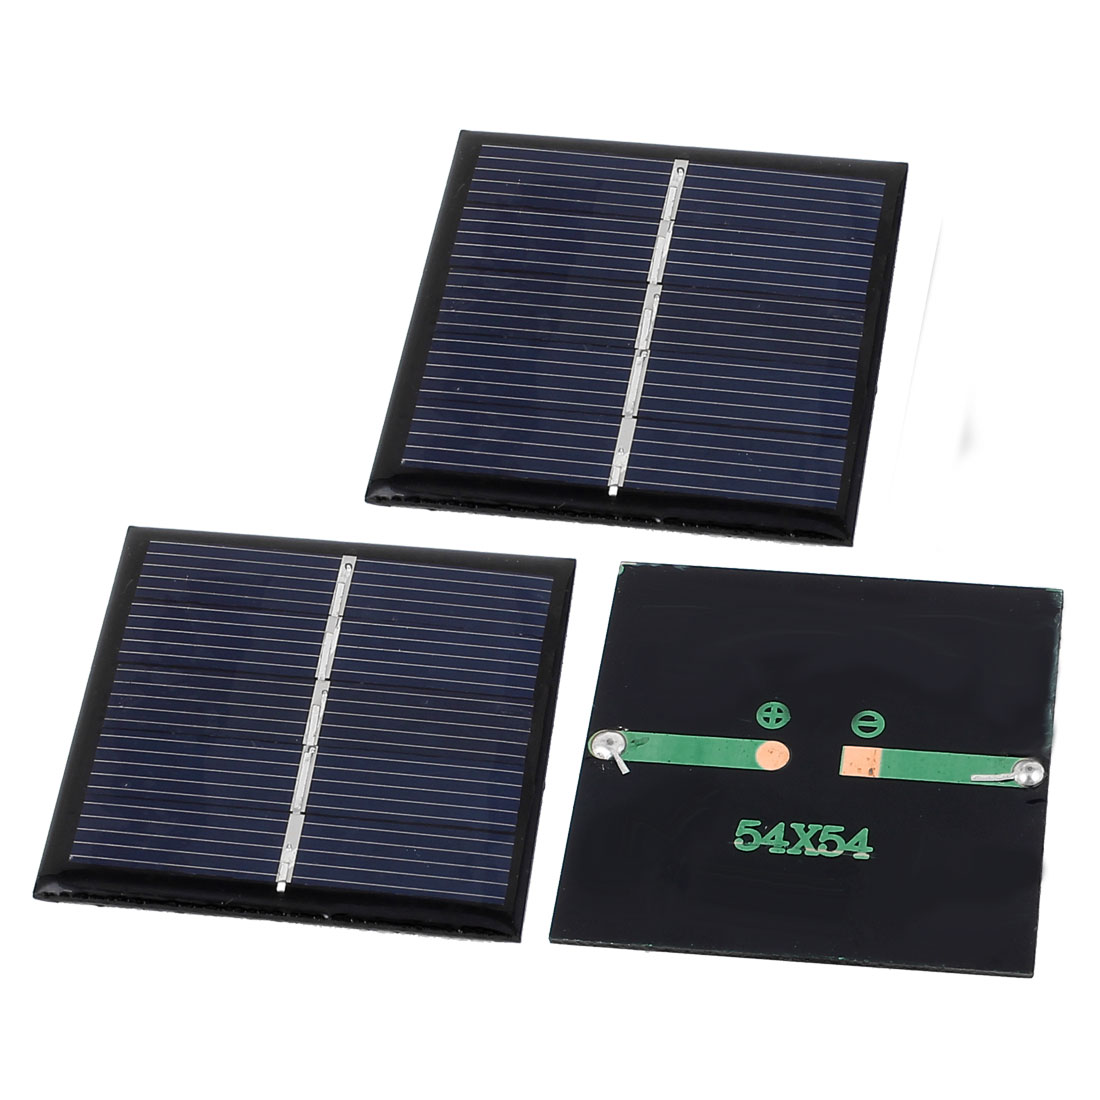 3 Pcs 2.5V 0.42W DIY Polycrystallinesilicon Solar Panel Battery Charger 54x54mm